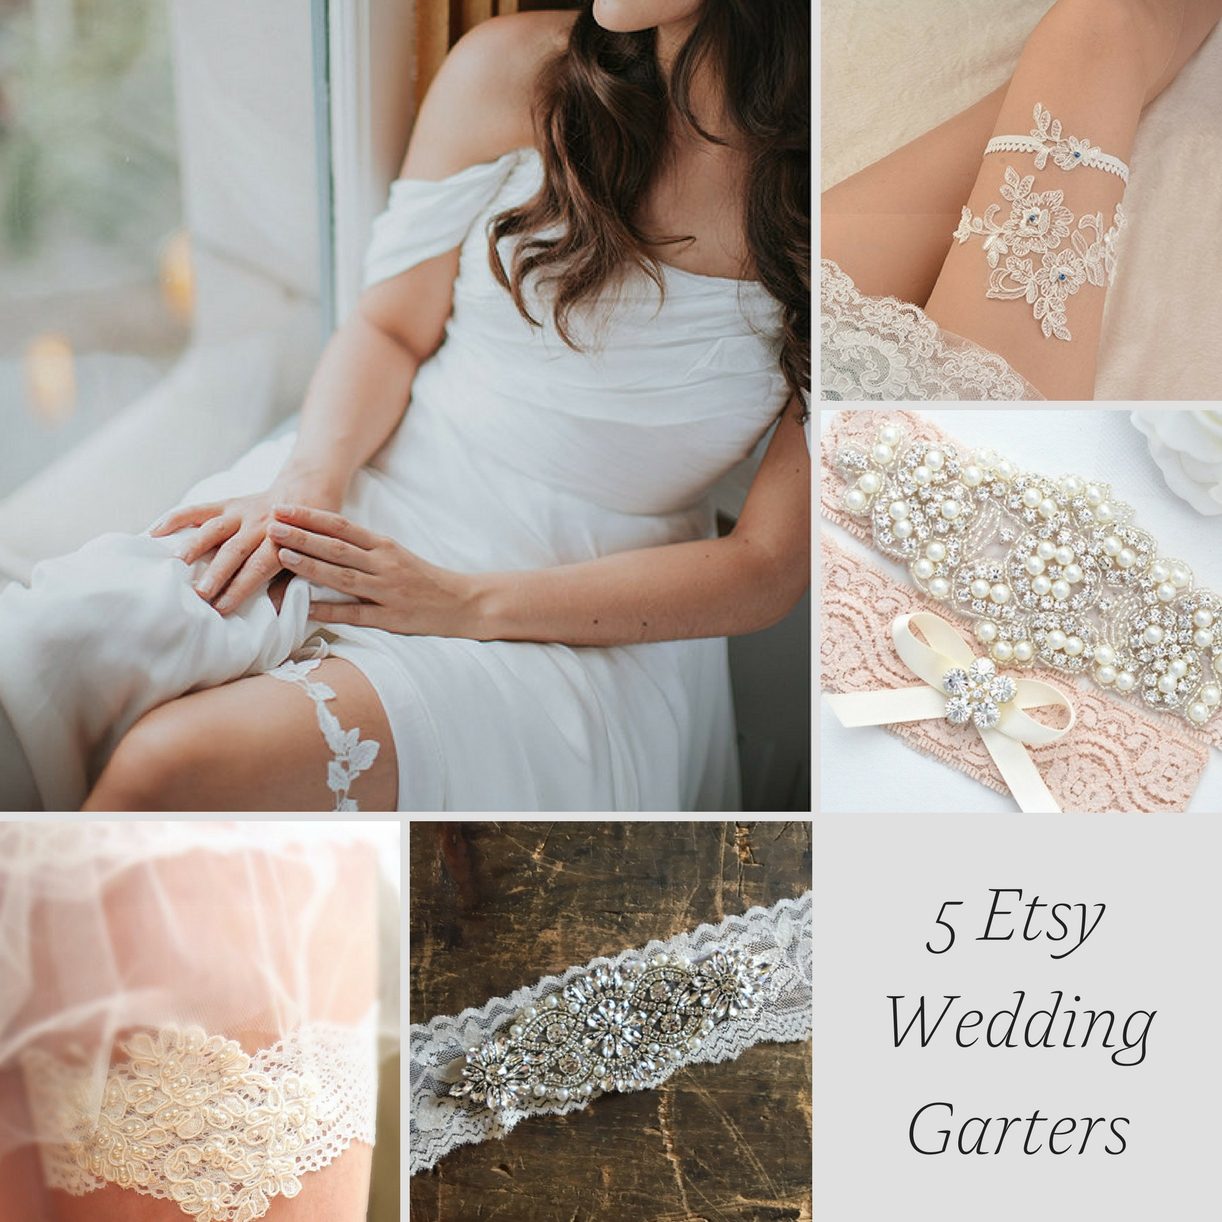 What Is A Garter At A Wedding: 5 Etsy Wedding Garters » Hill City Bride